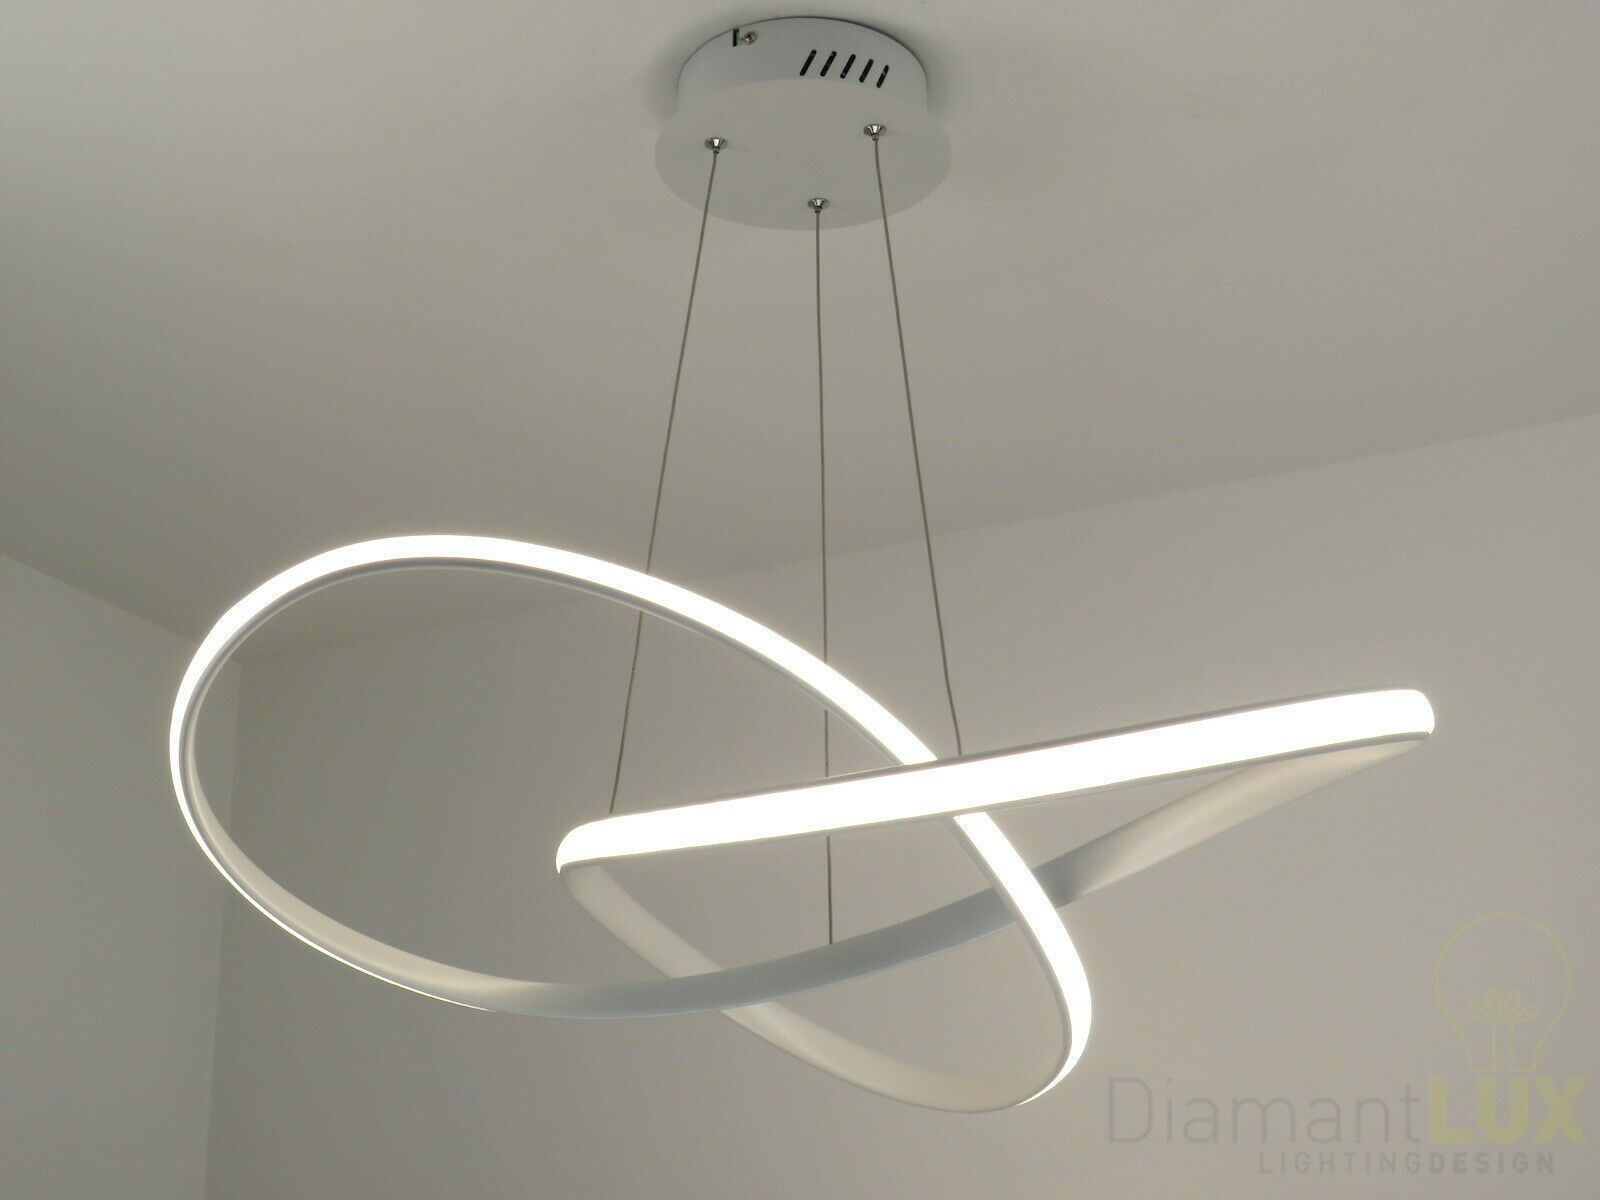 Lampadario Sospensione Design Moderno Led Onde Luminose ...